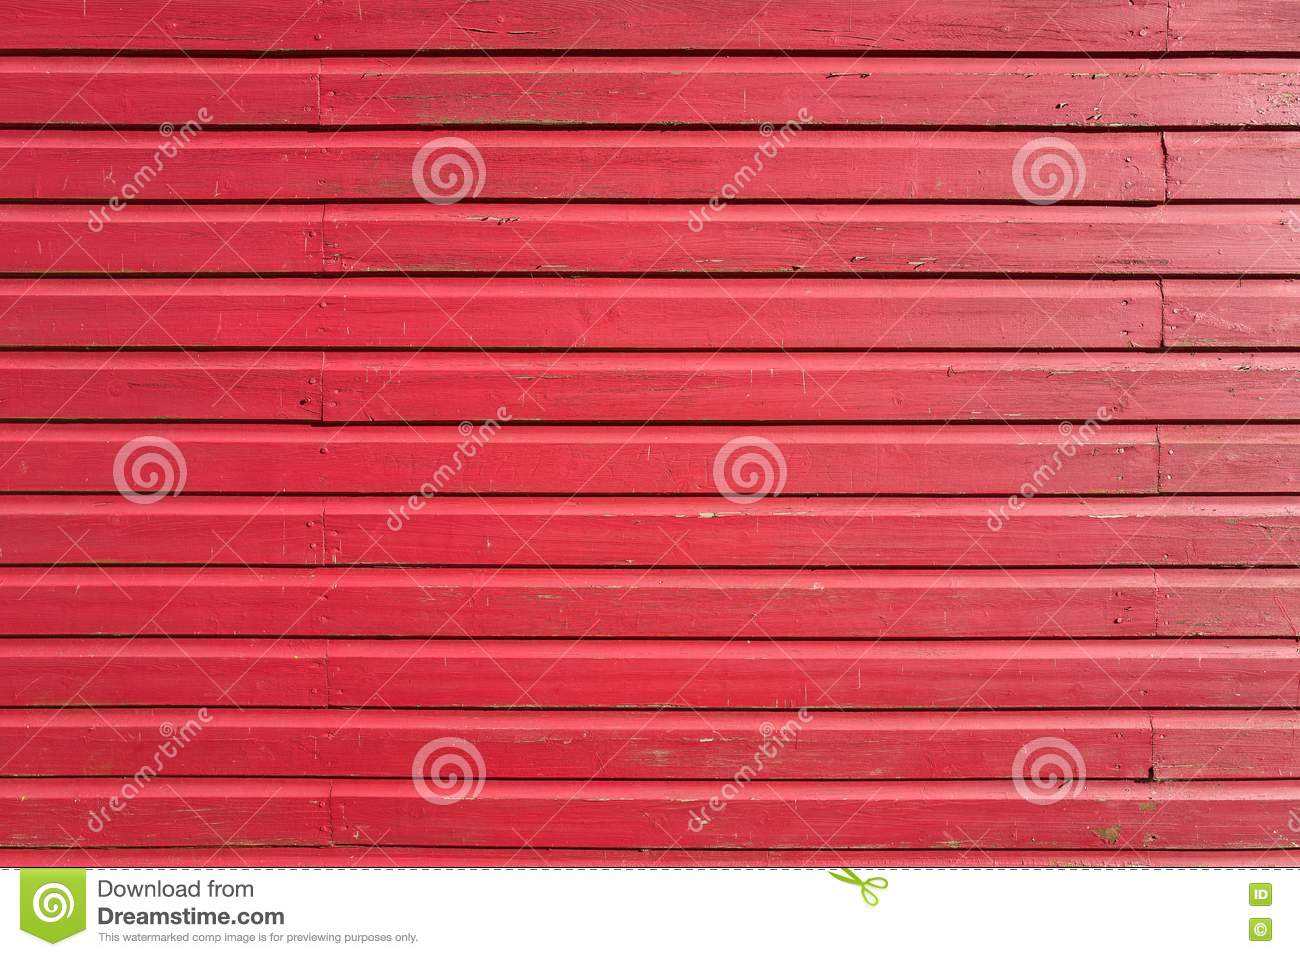 Pared de madera coloreada rojo